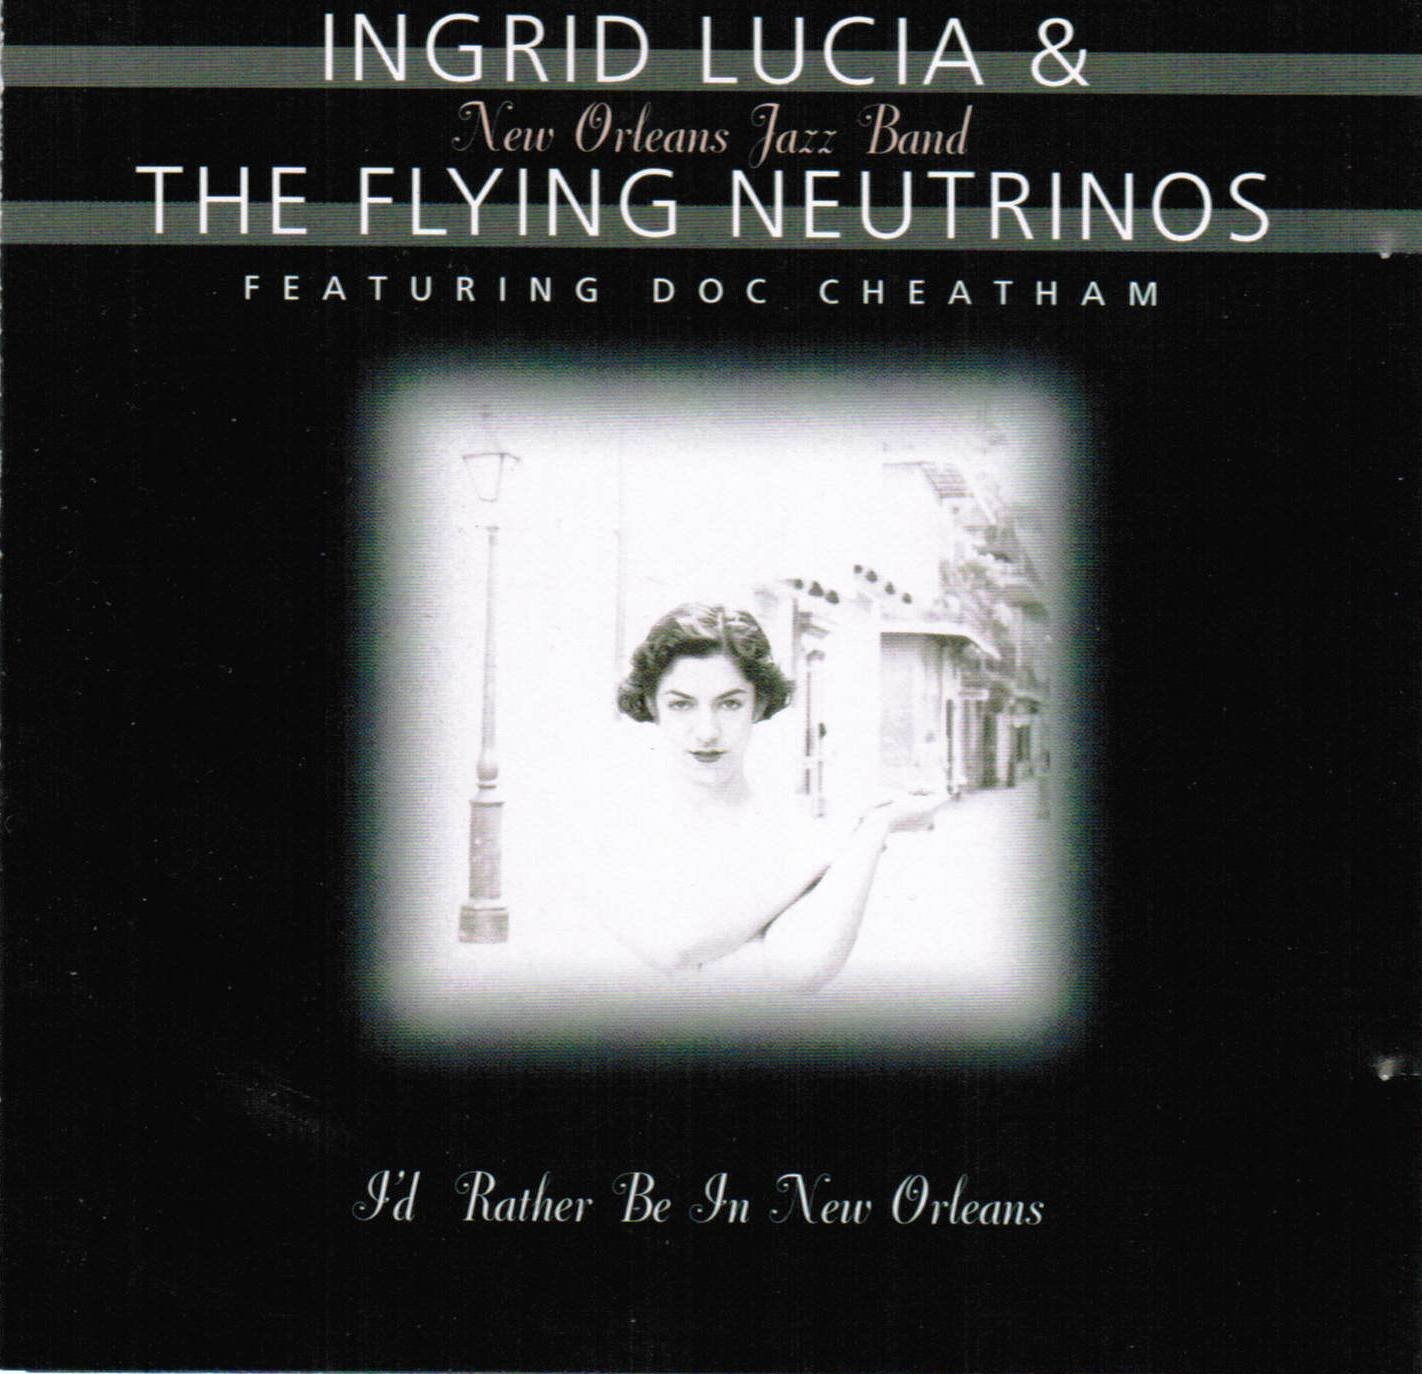 1998 The Flying Neutrinos: I'd Rather Be In New Orleans